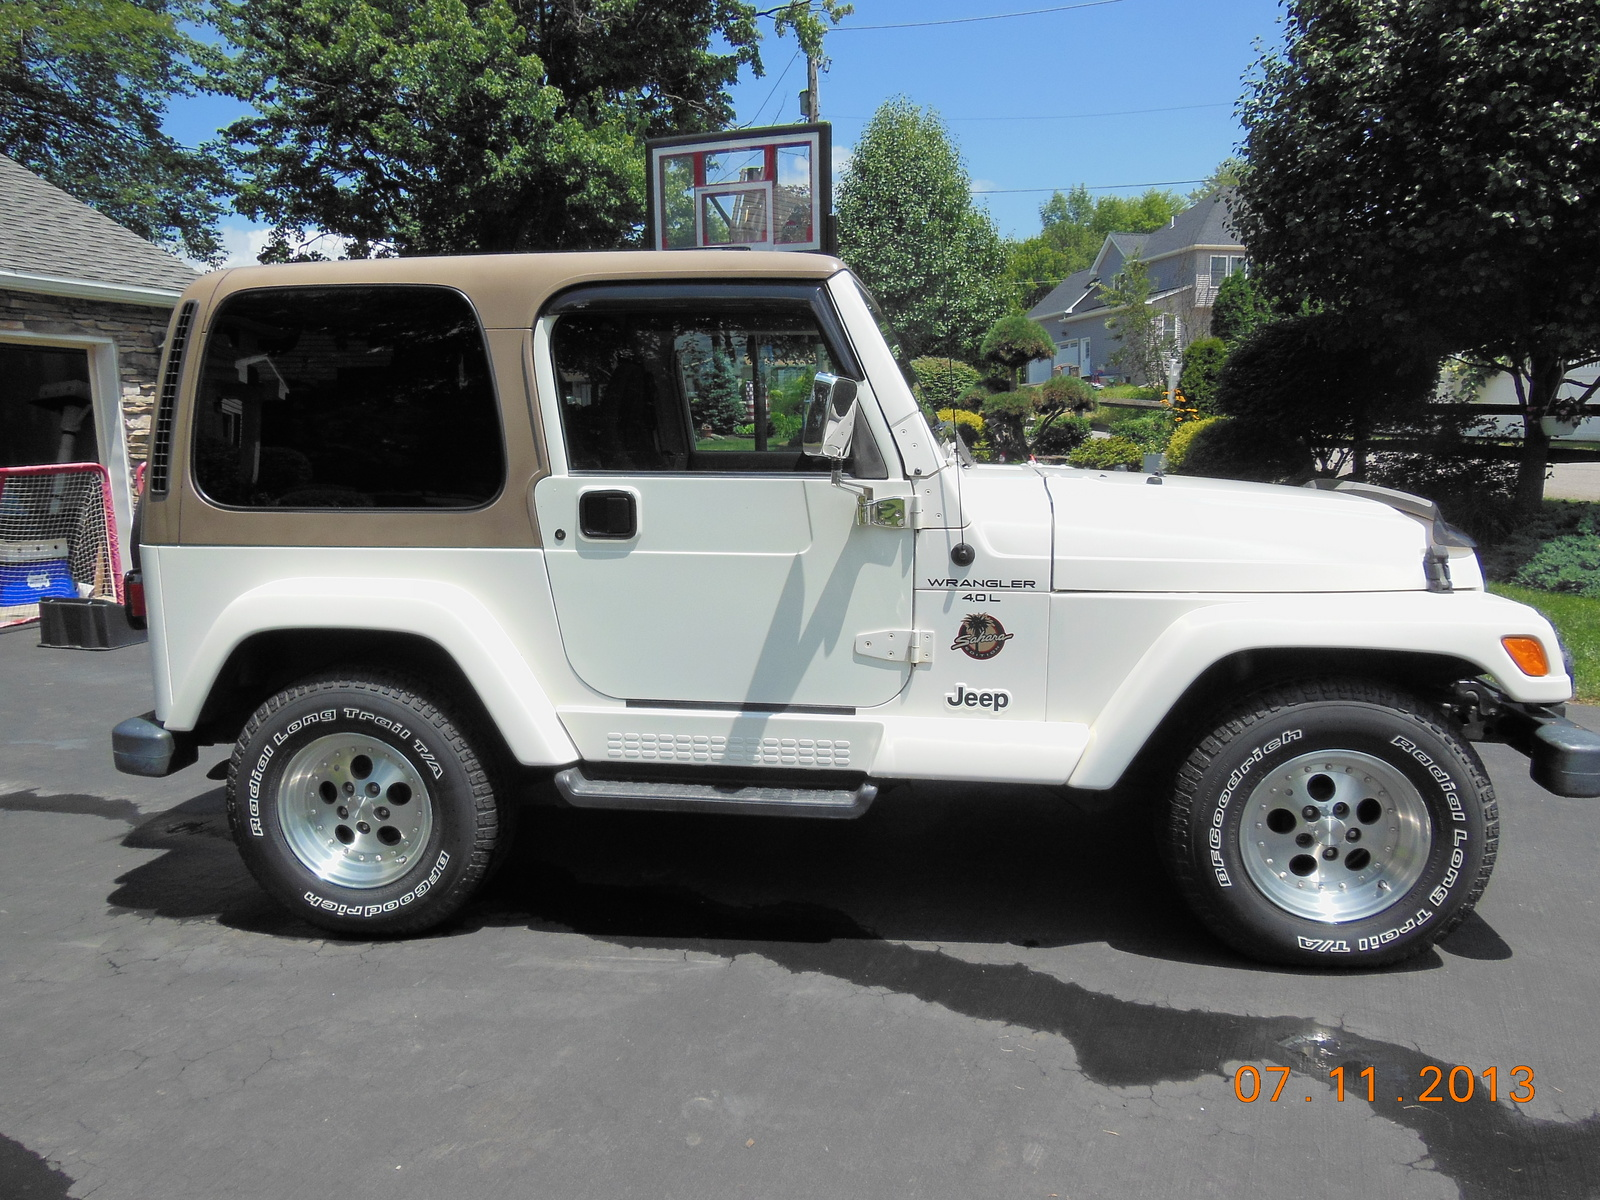 Kj cargo in addition 2005 Jeep Wrangler Pictures C2390 pi36338237 additionally 2003 Jeep Grand Cherokee Pictures C2394 moreover 2002 Jeep Wrangler Pictures C2399 pi35908133 likewise 2008 Jeep Wrangler Pictures C9171 pi36055558. on 1997 jeep patriot